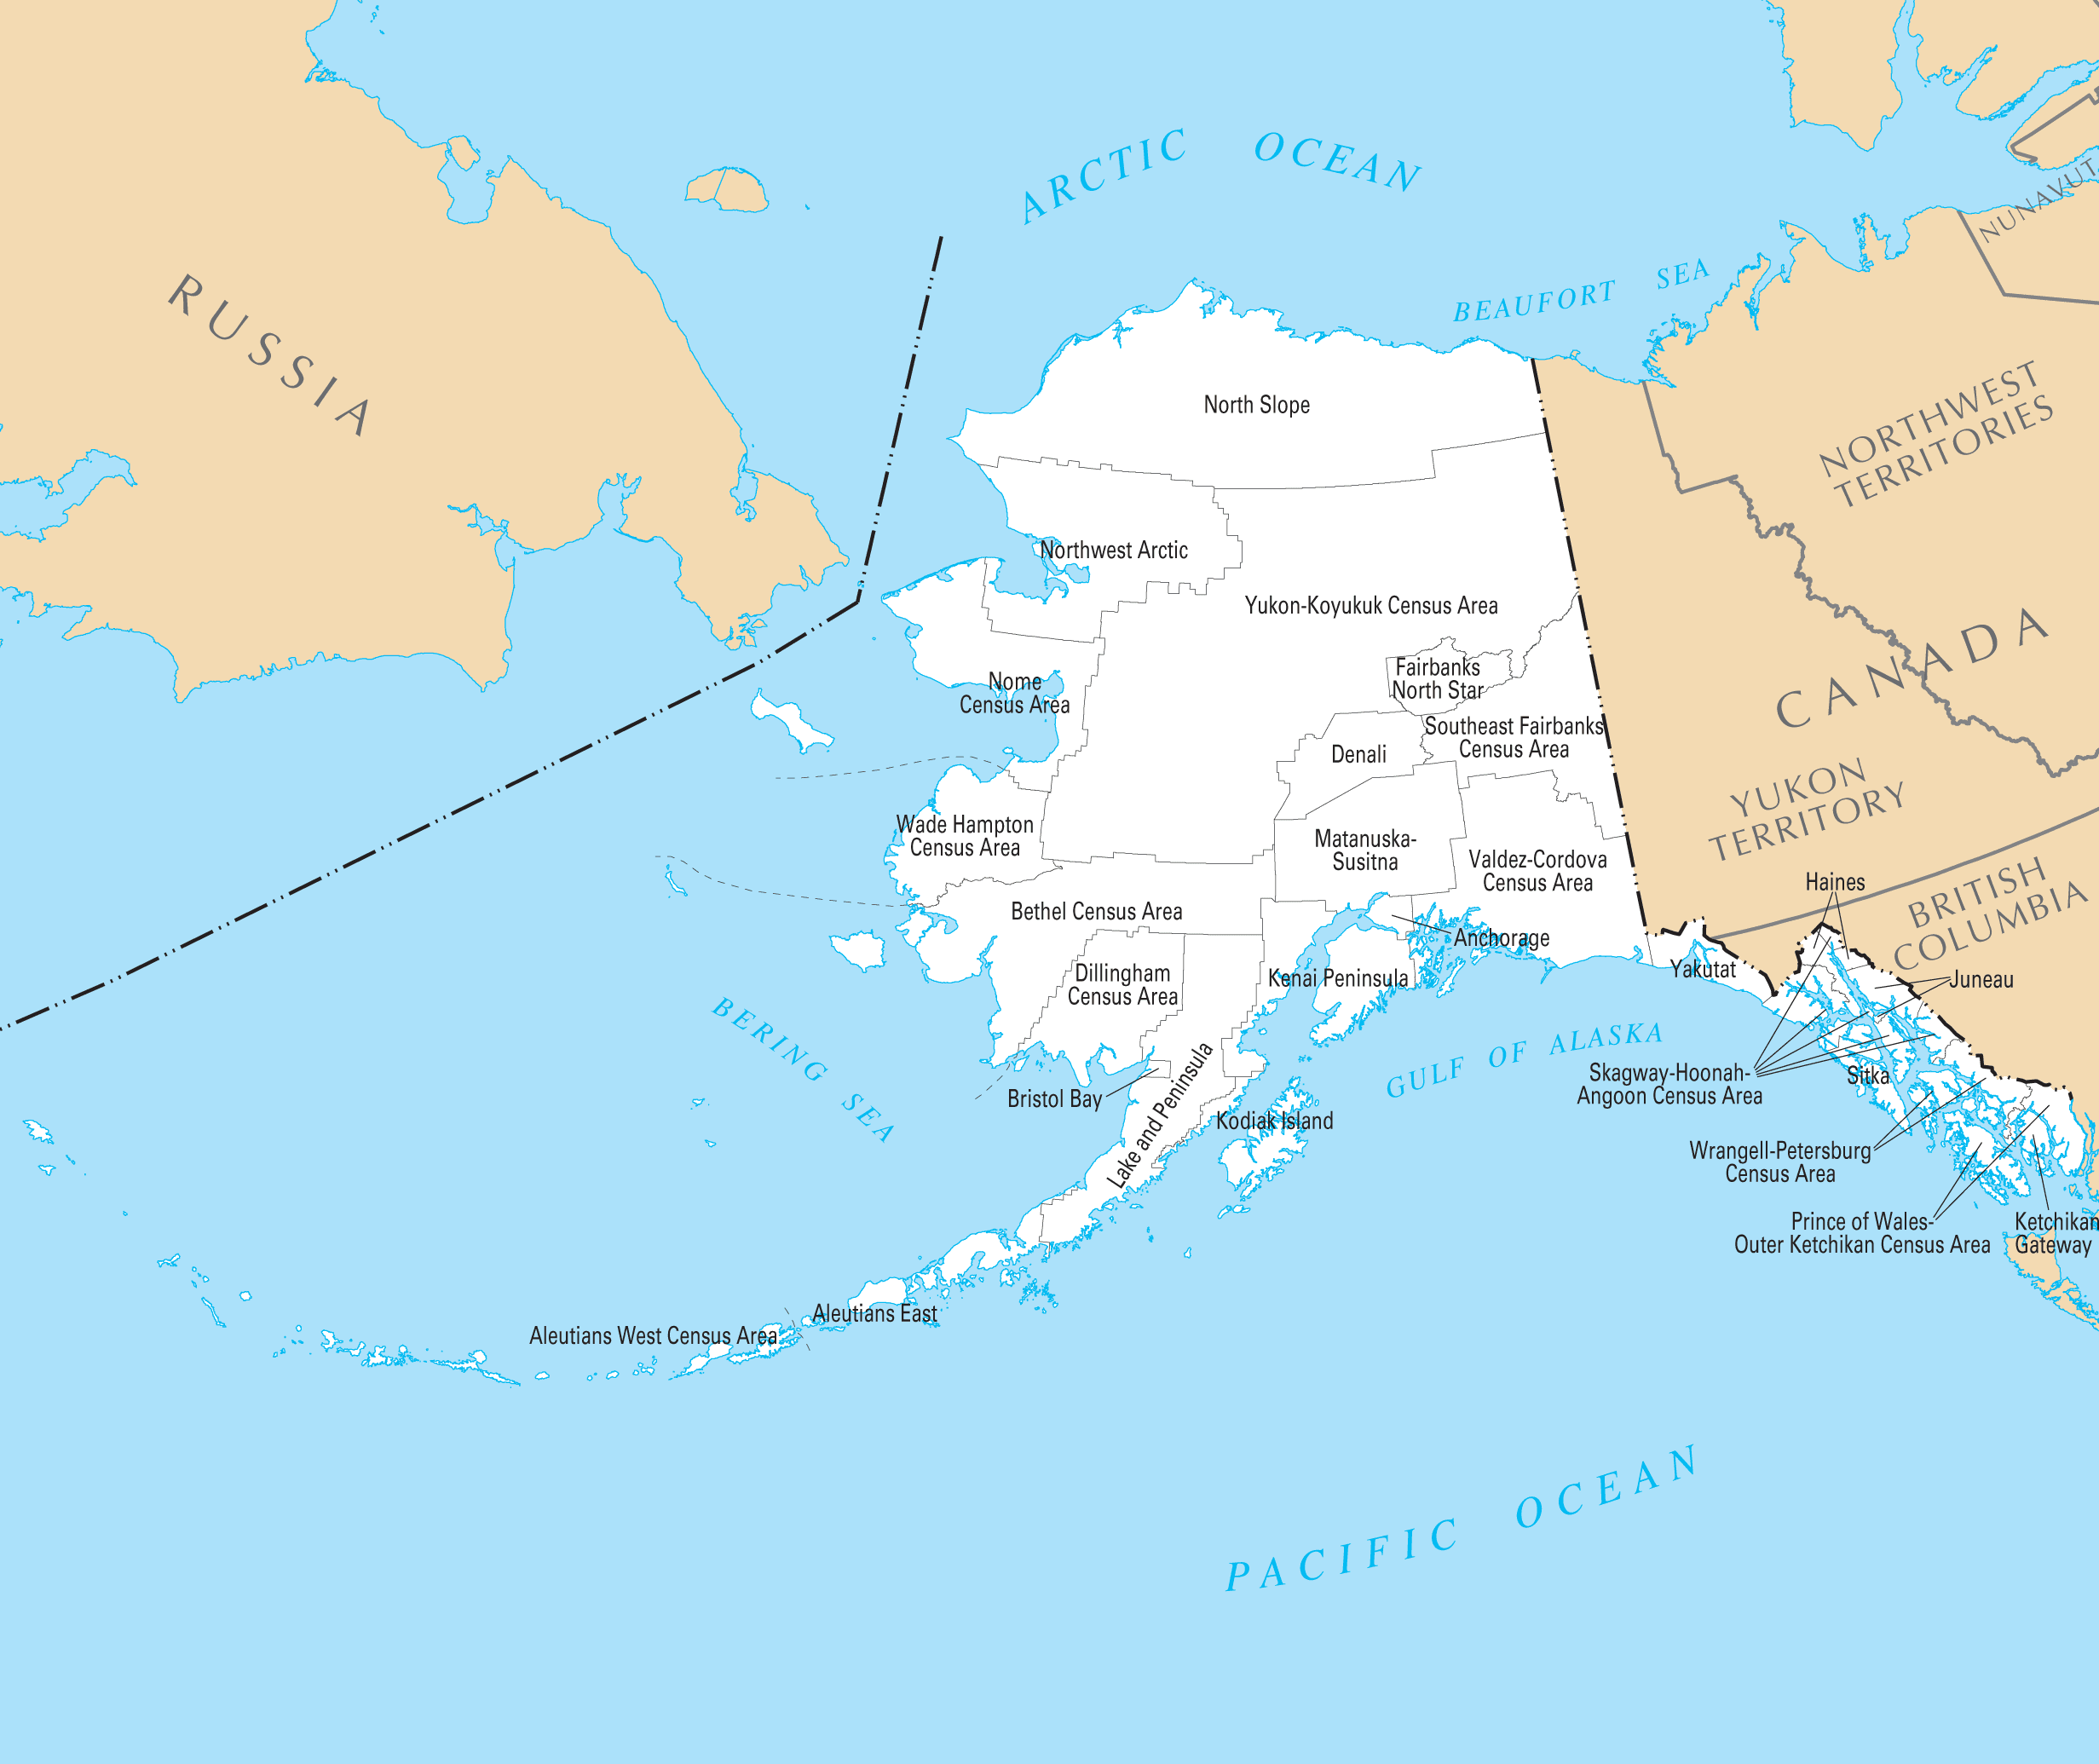 Alaska dillingham county - Click On The Alaska County Map